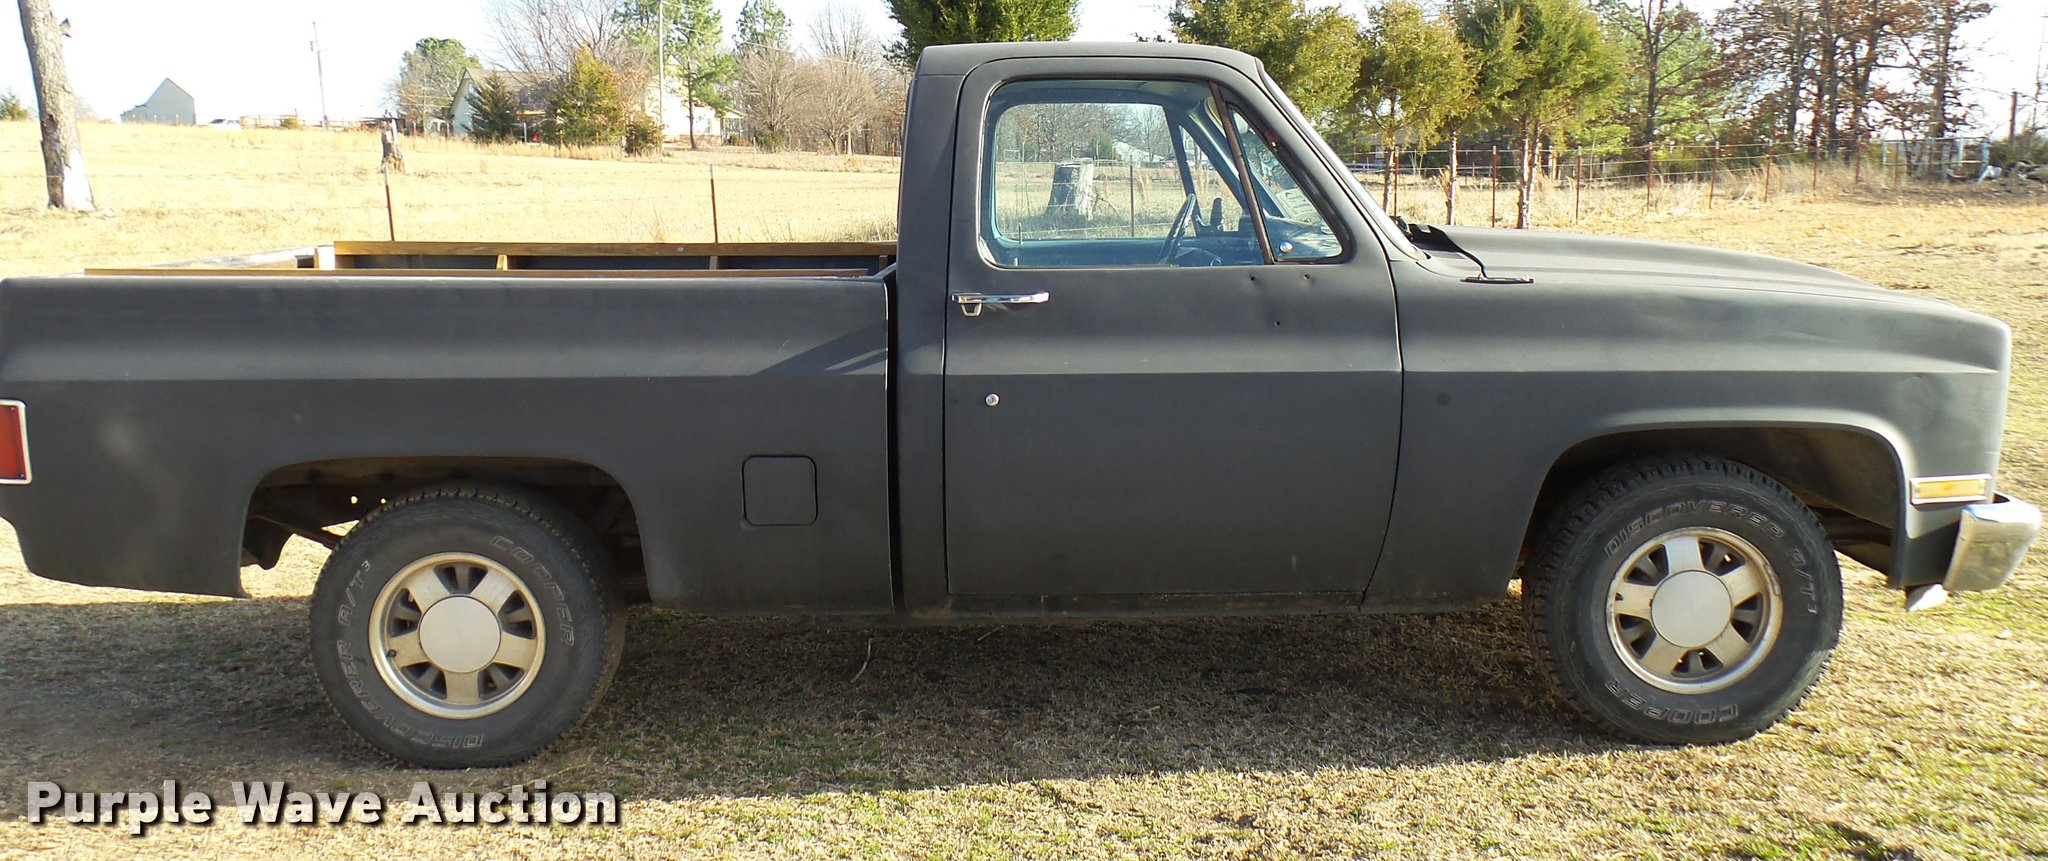 All Chevy chevy 1986 c10 : 1986 Chevrolet C10 pickup truck | Item DB2314 | SOLD! March ...